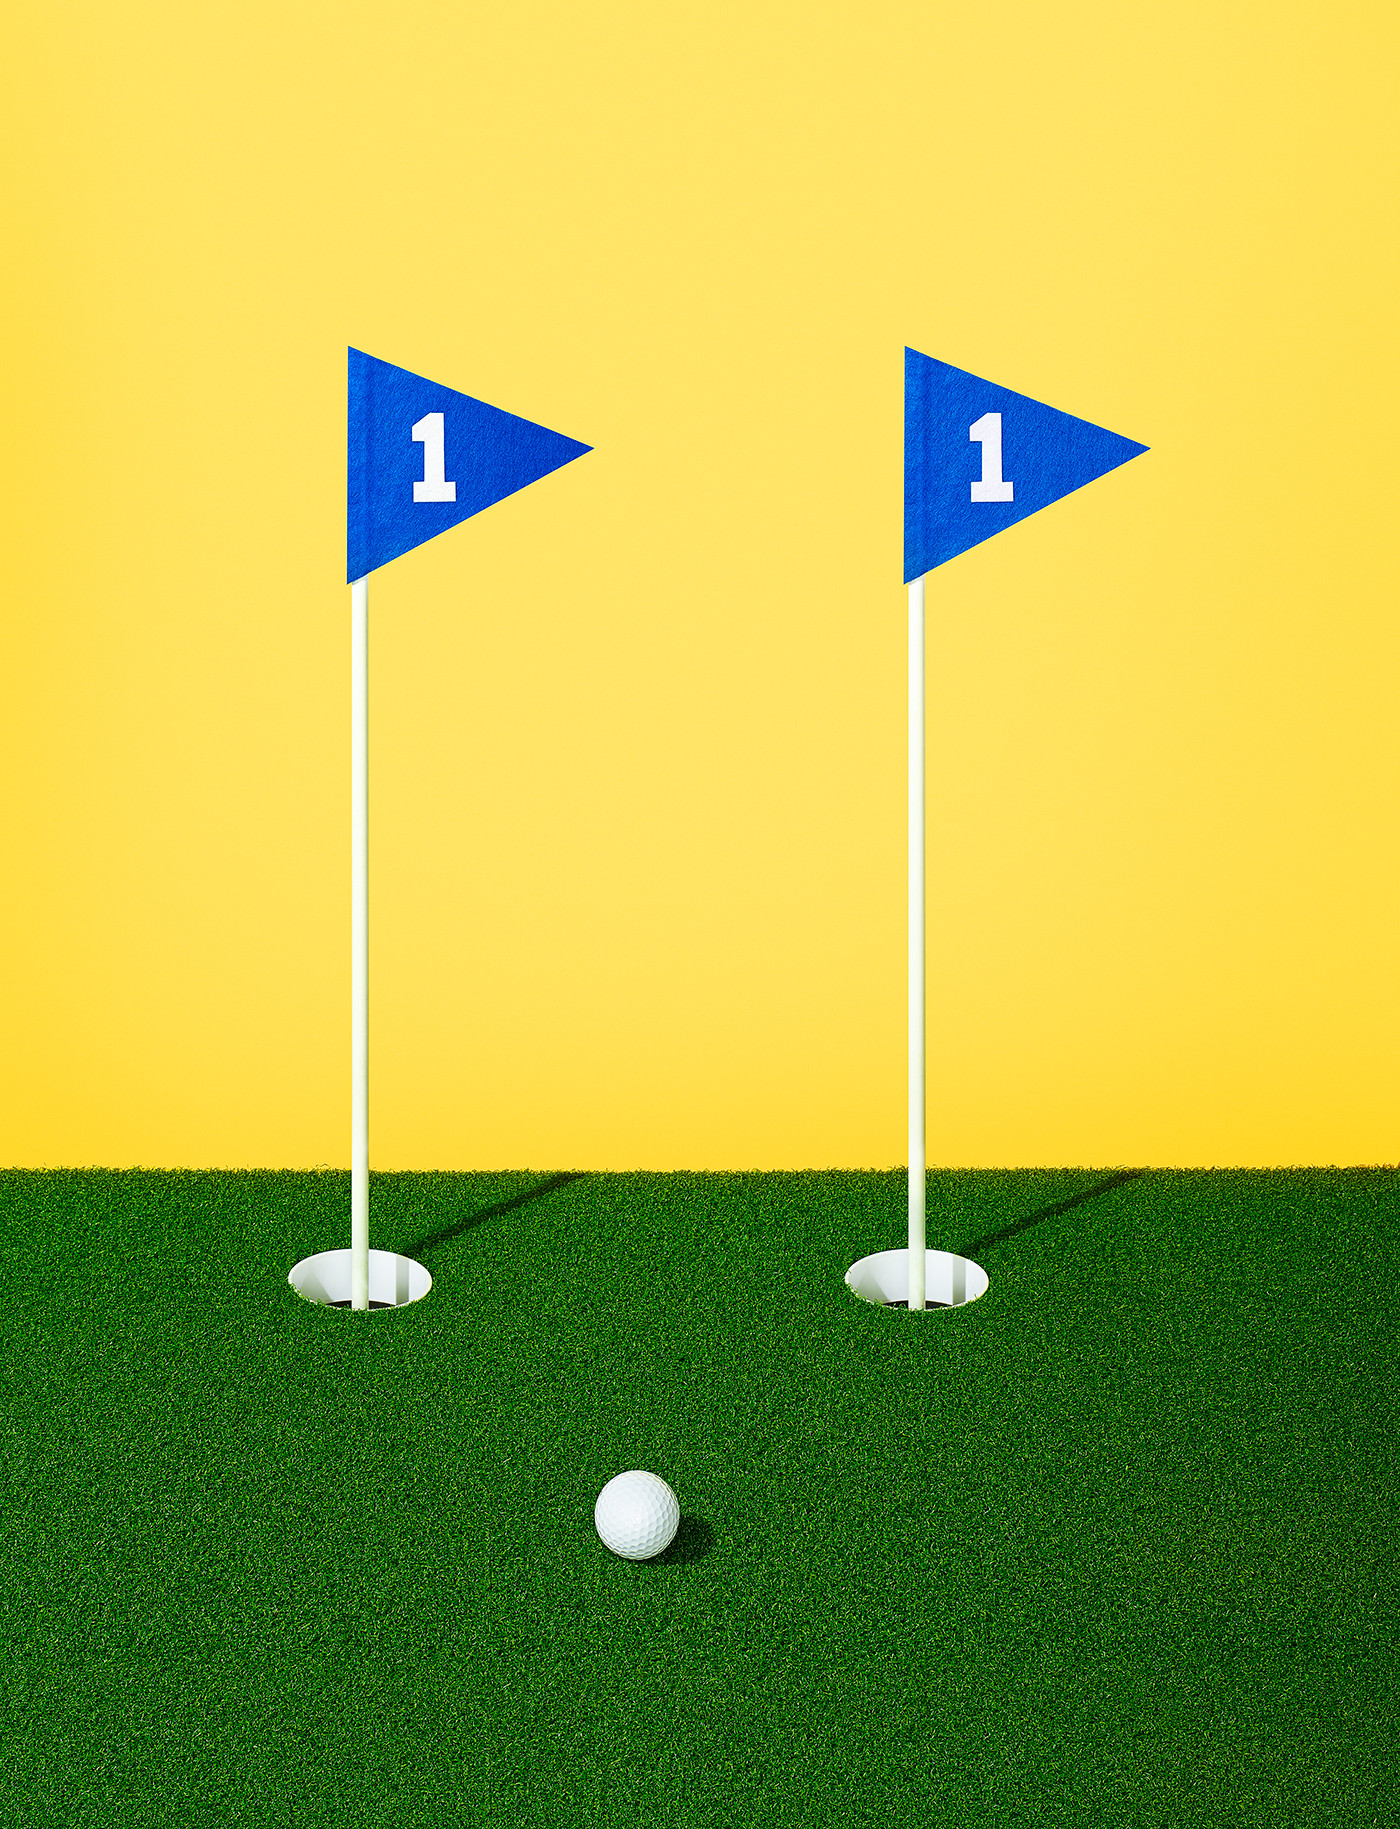 https://tickertapecdn.tdameritrade.com/assets/images/pages/md/Miniature golf green in the shape of a two way arrow